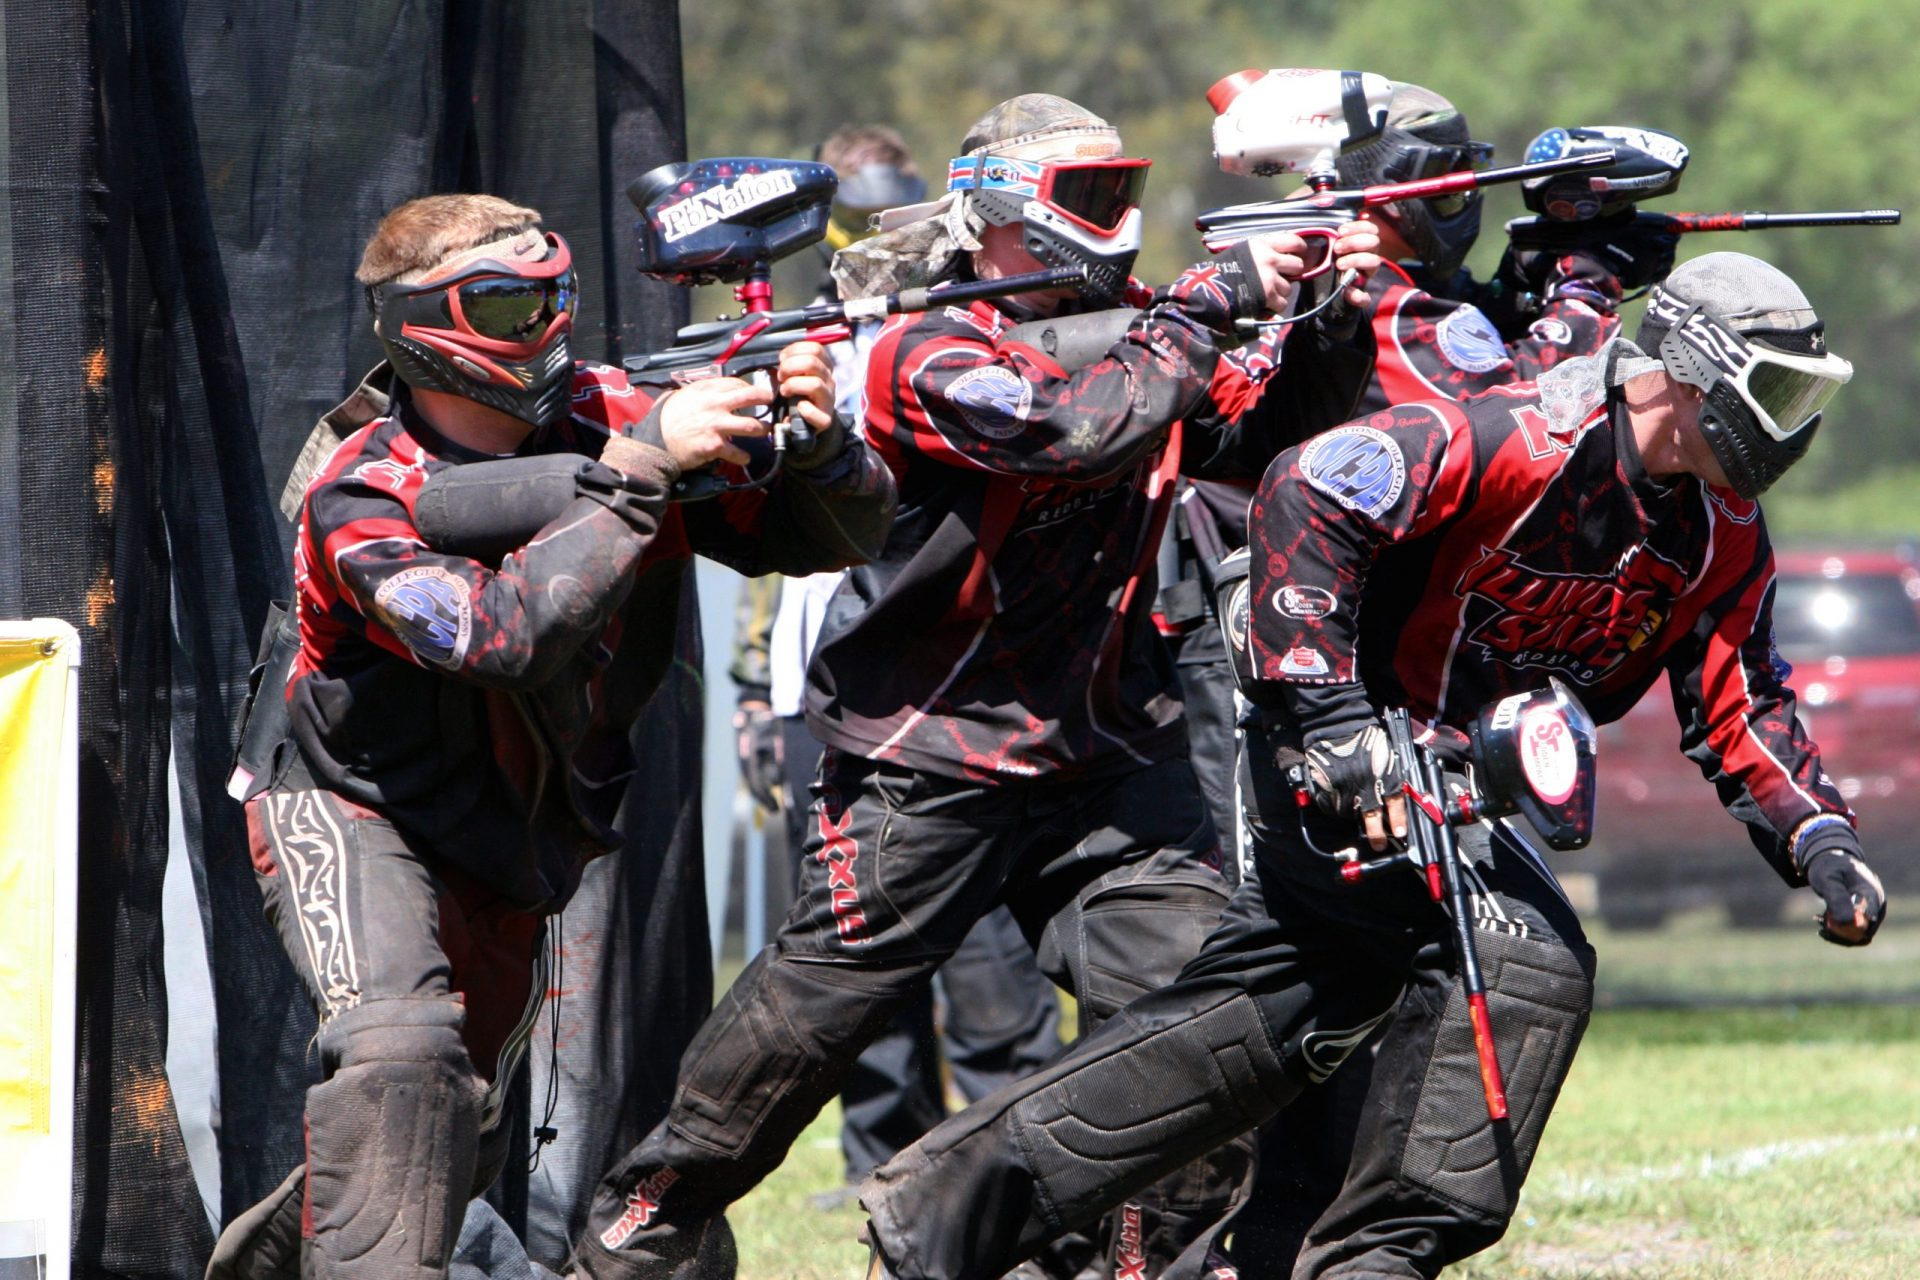 A team is playing paintball and learning how to play paintball for the first time